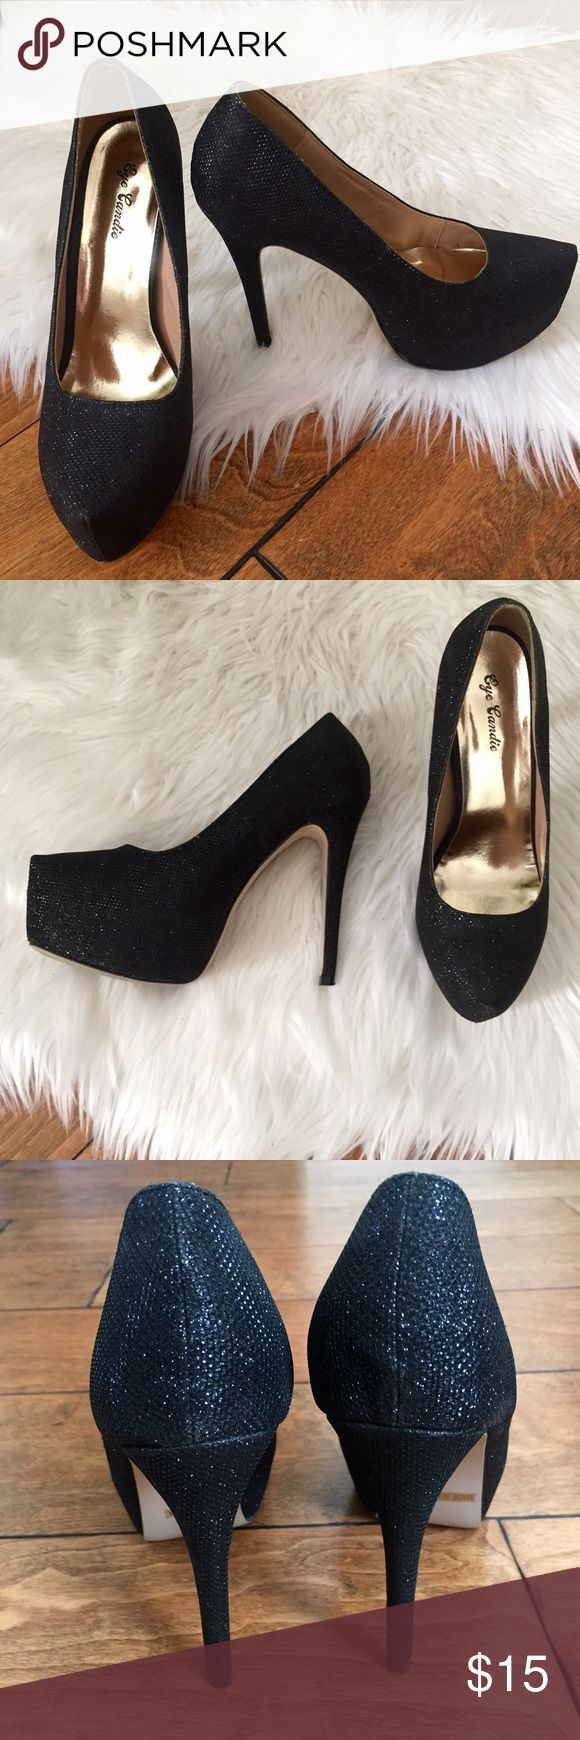 """SPARKLY BLACK HEELS Only worn twice. 5"""" heel with 1.5"""" platform. Fantastic condition! Eye Candie Shoes Heels"""